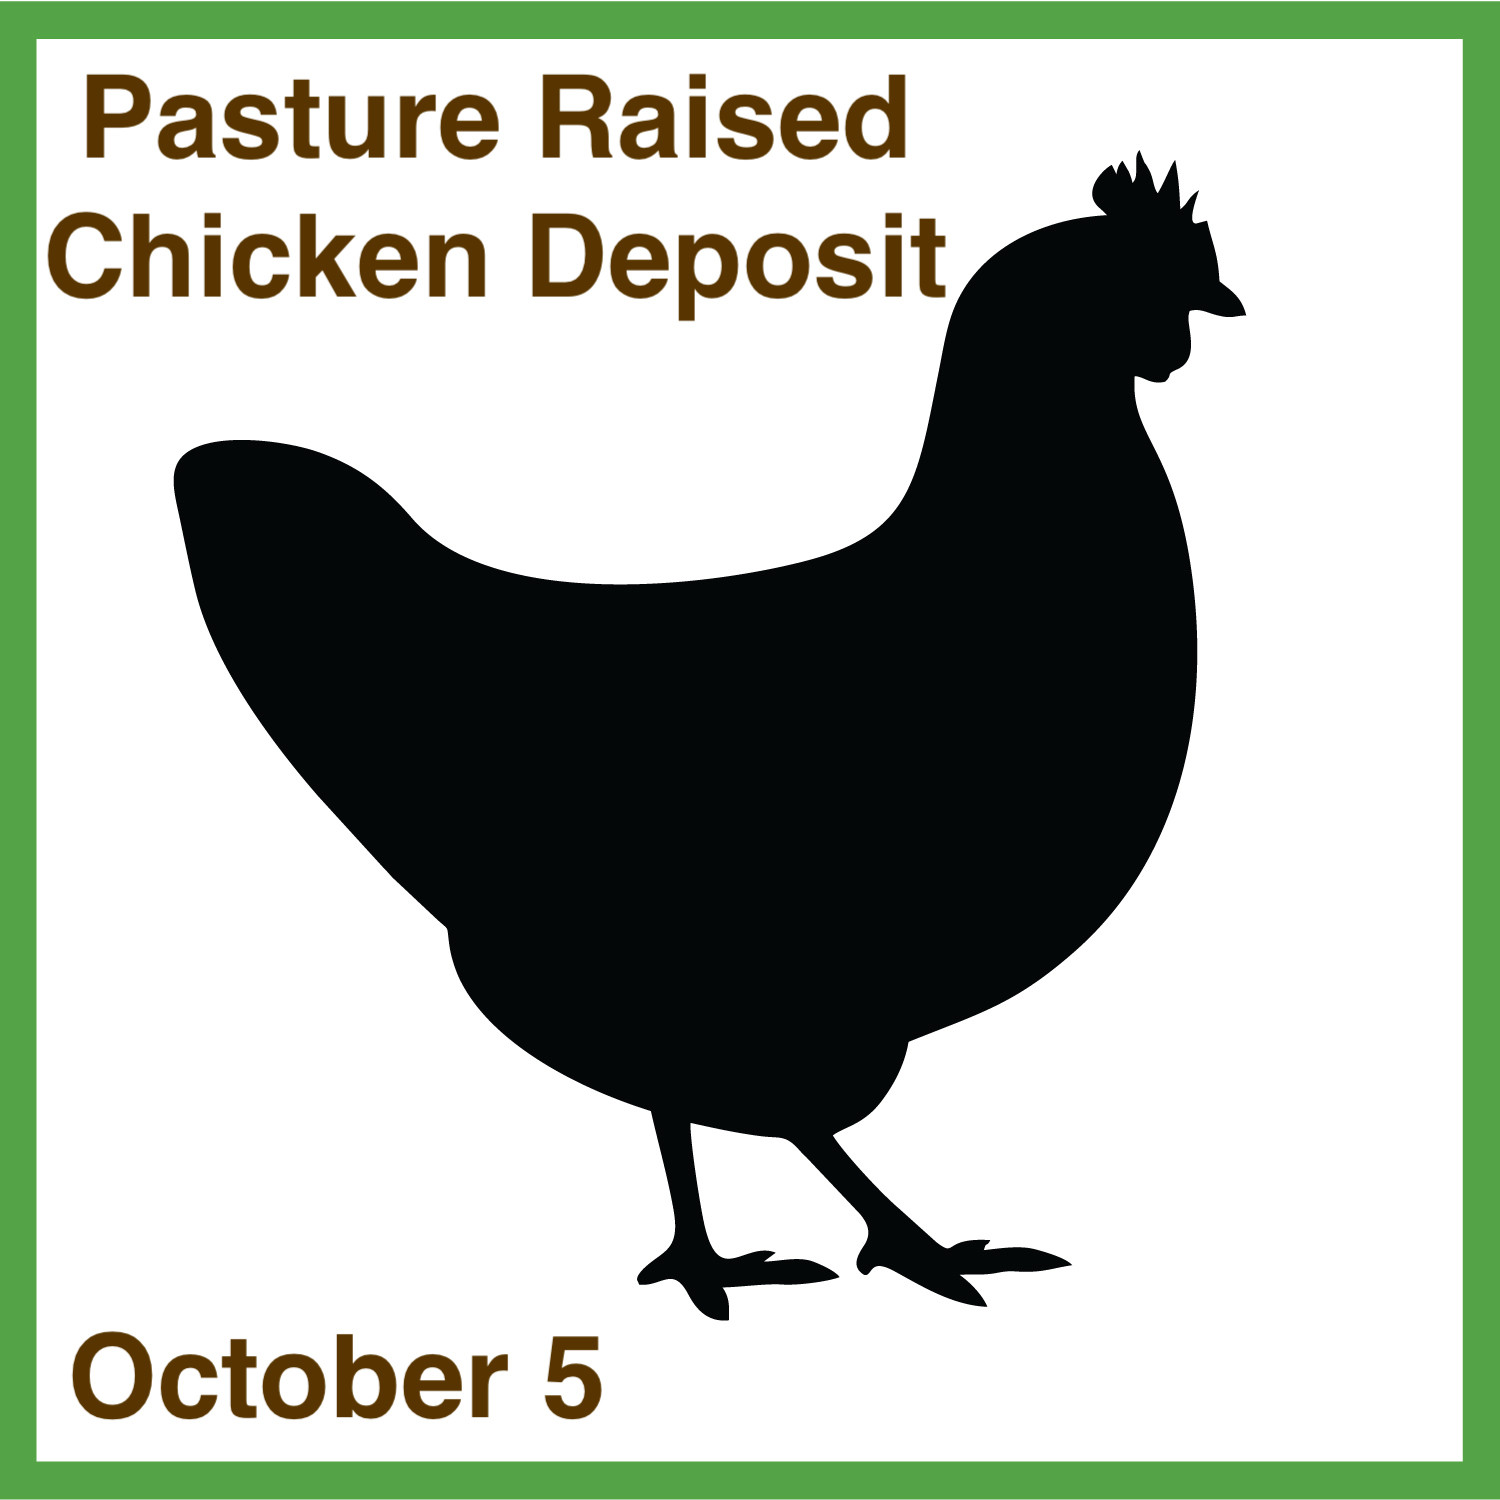 Chicken-Pasture Raised (Deposit October 5)